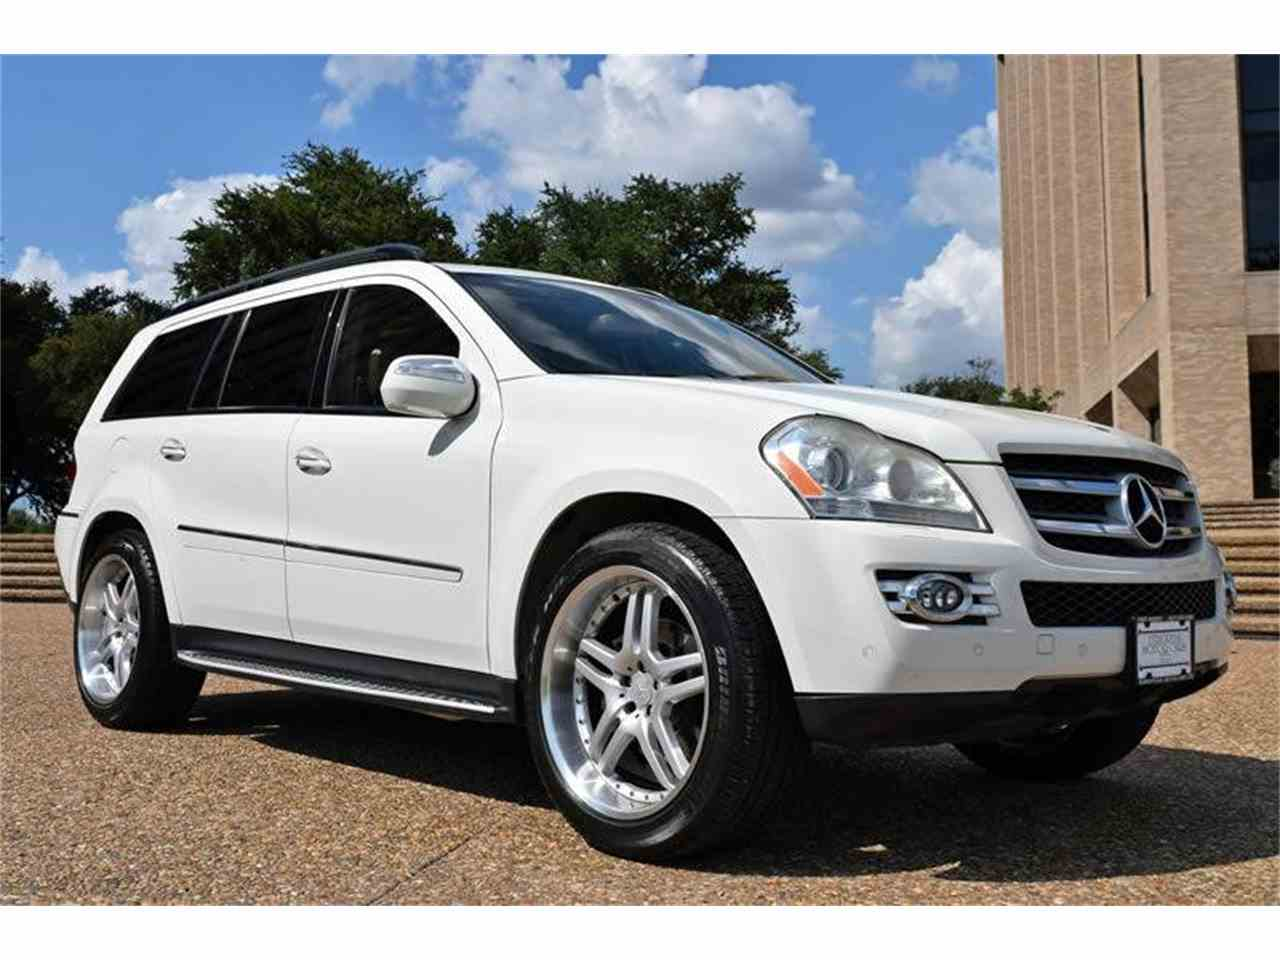 ft maserati at fl used fort sale suv benz htm for lauderdale mercedes in